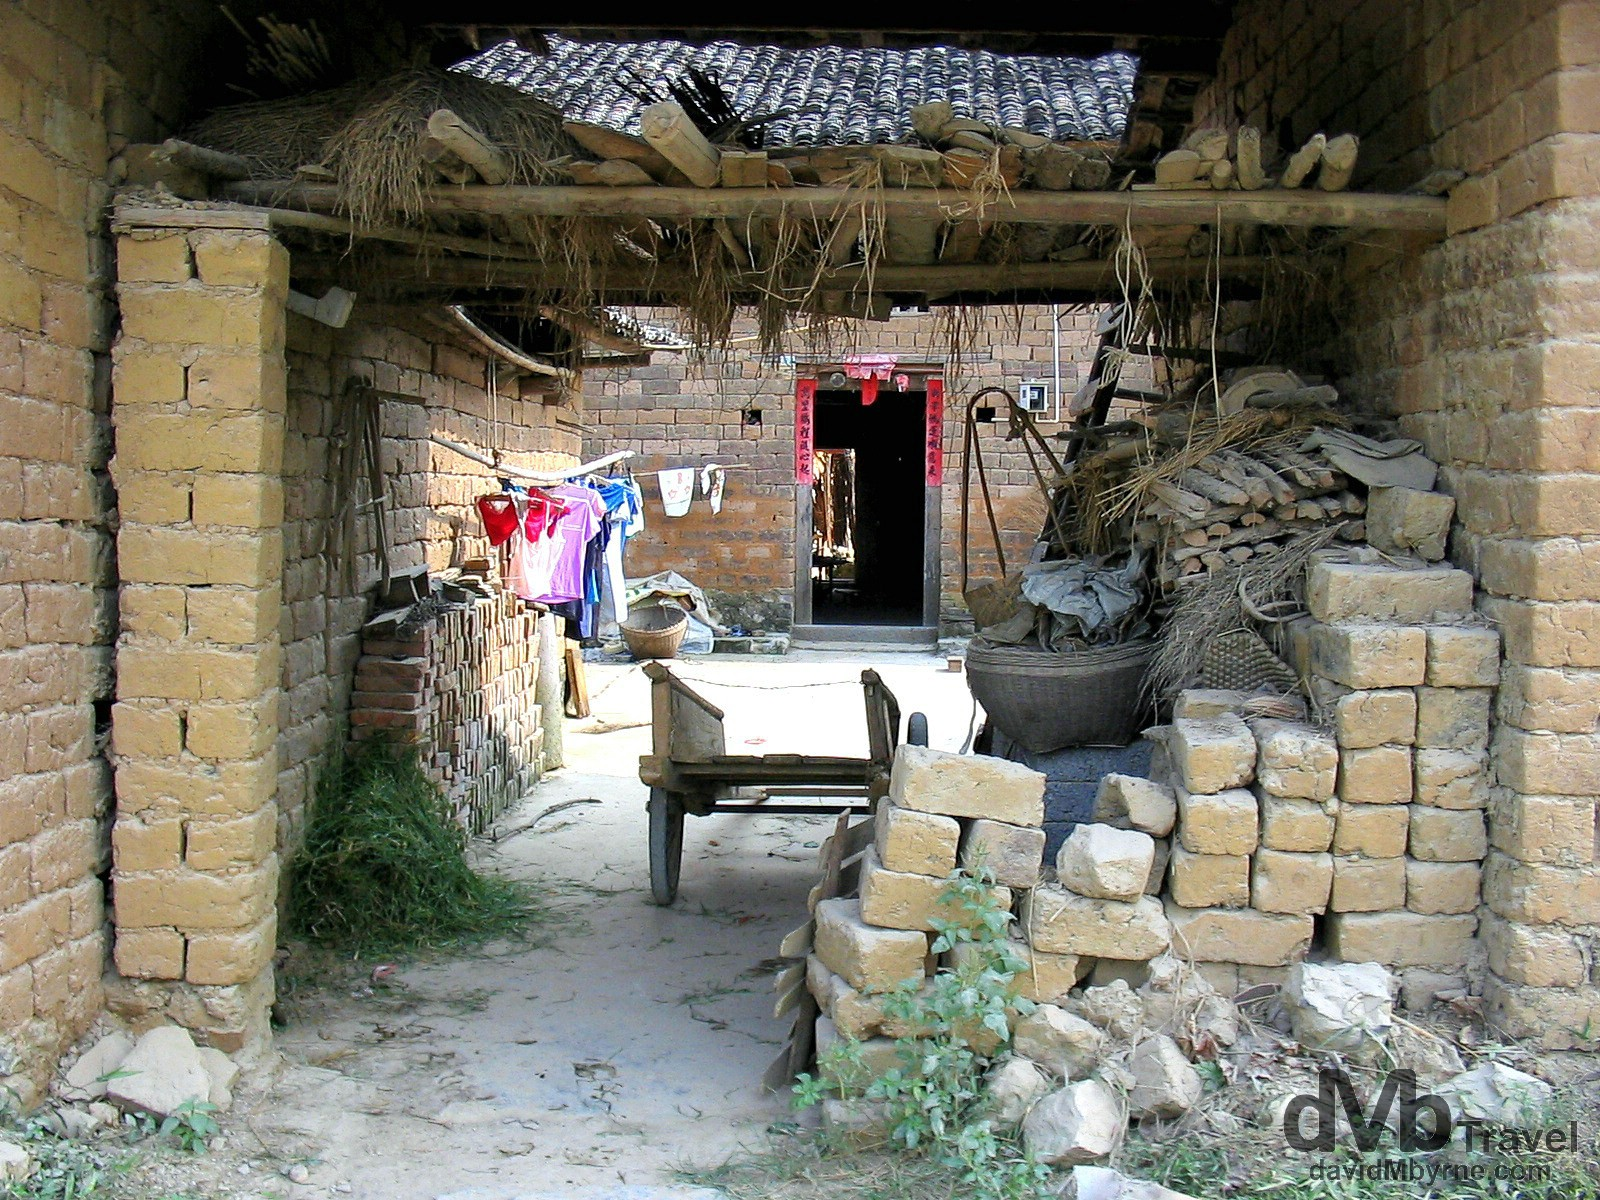 A village in the countryside outside Yangshou, Guangxi Province, Southern China. September 11th, 2004.